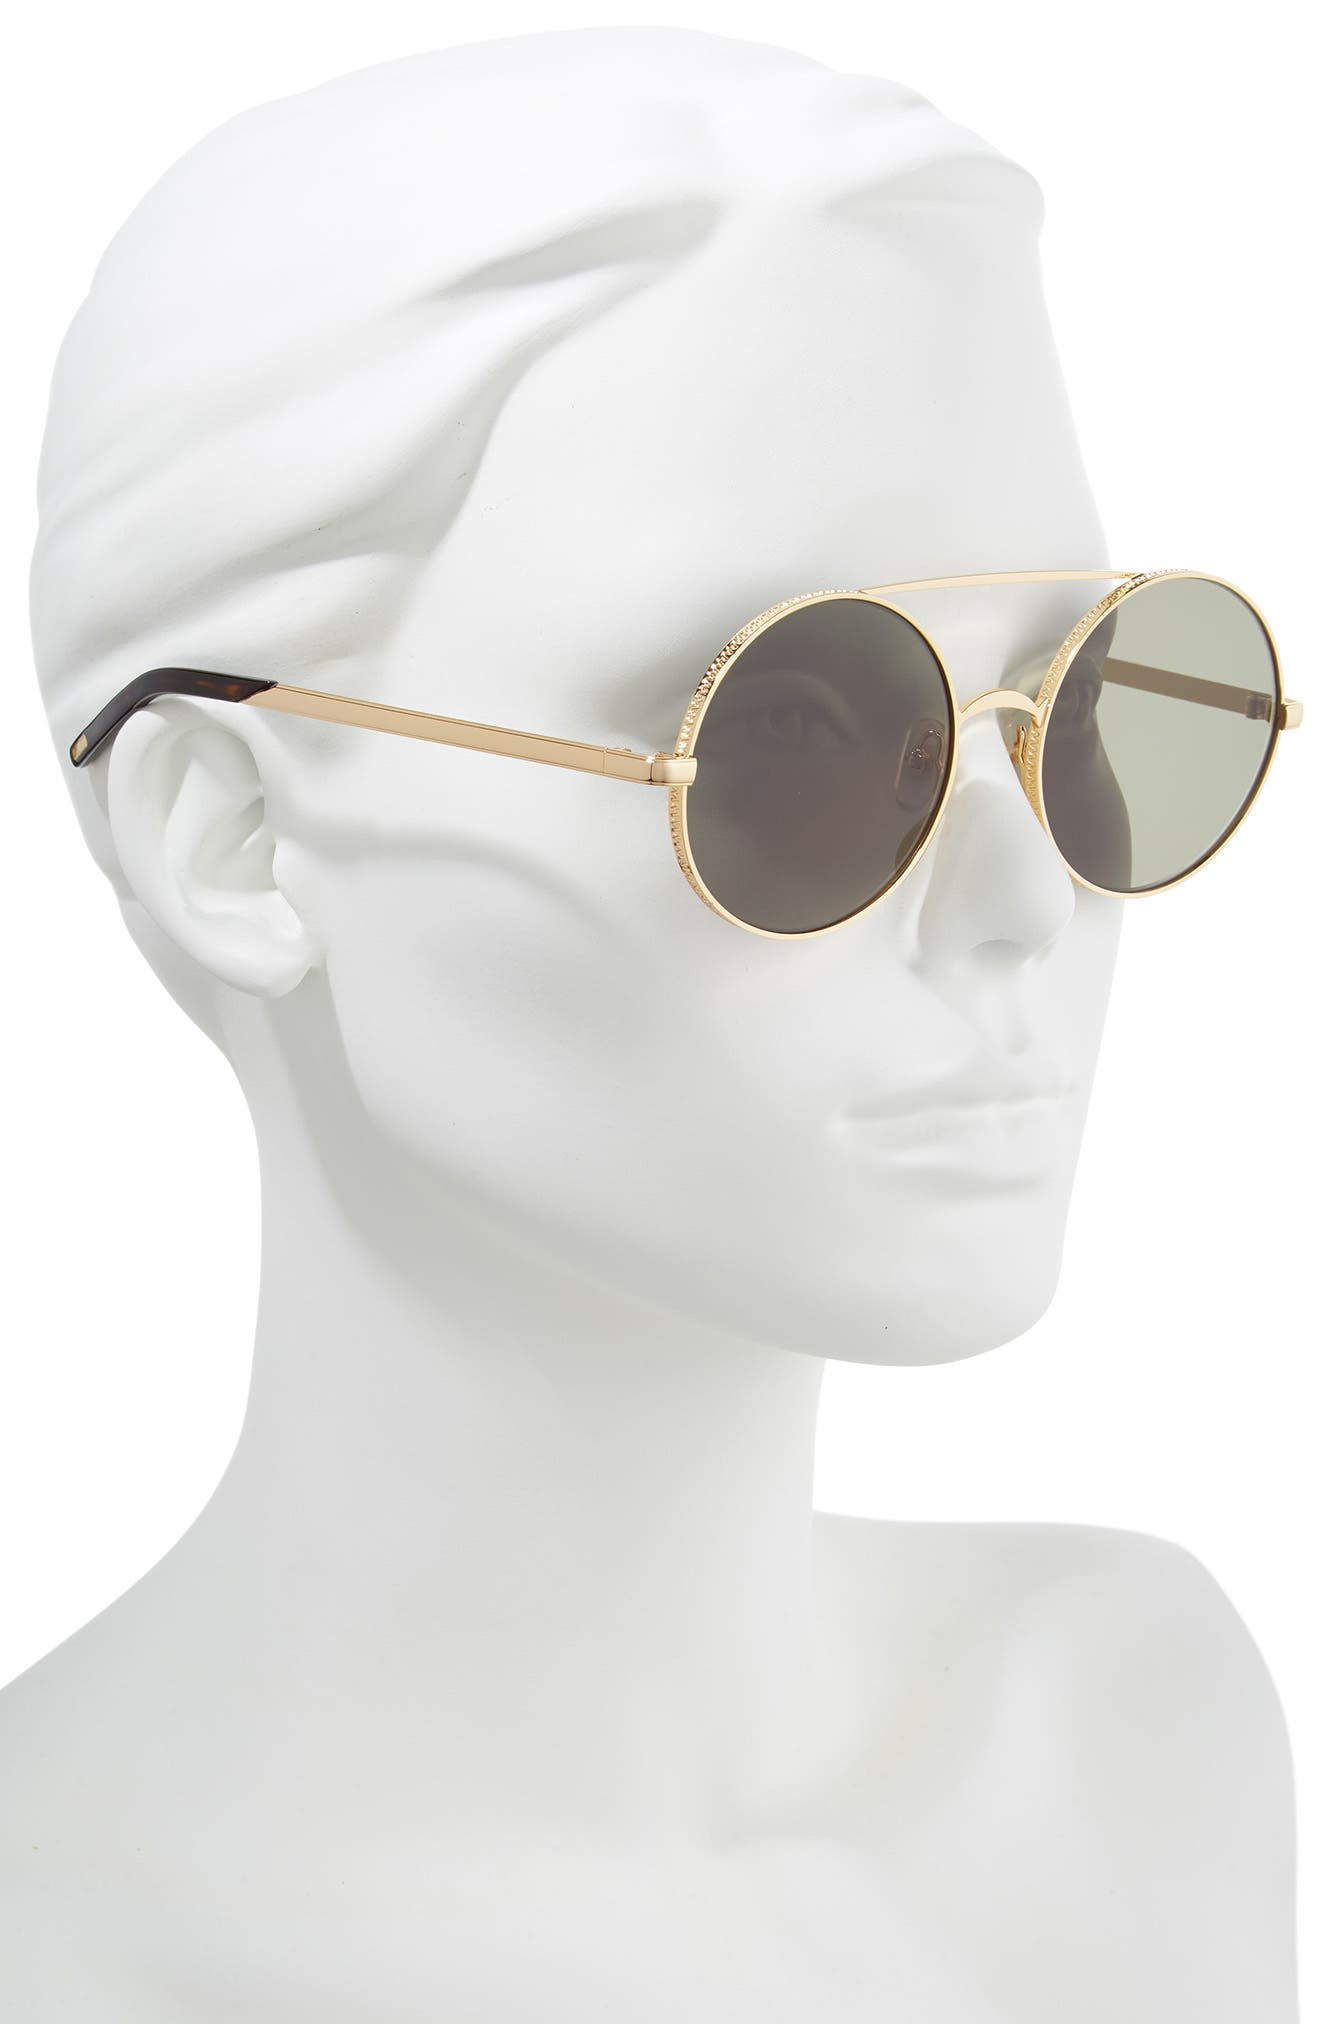 Ace 55mm Round Sunglasses,                             Alternate thumbnail 2, color,                             GOLD/ G 15 SOLID